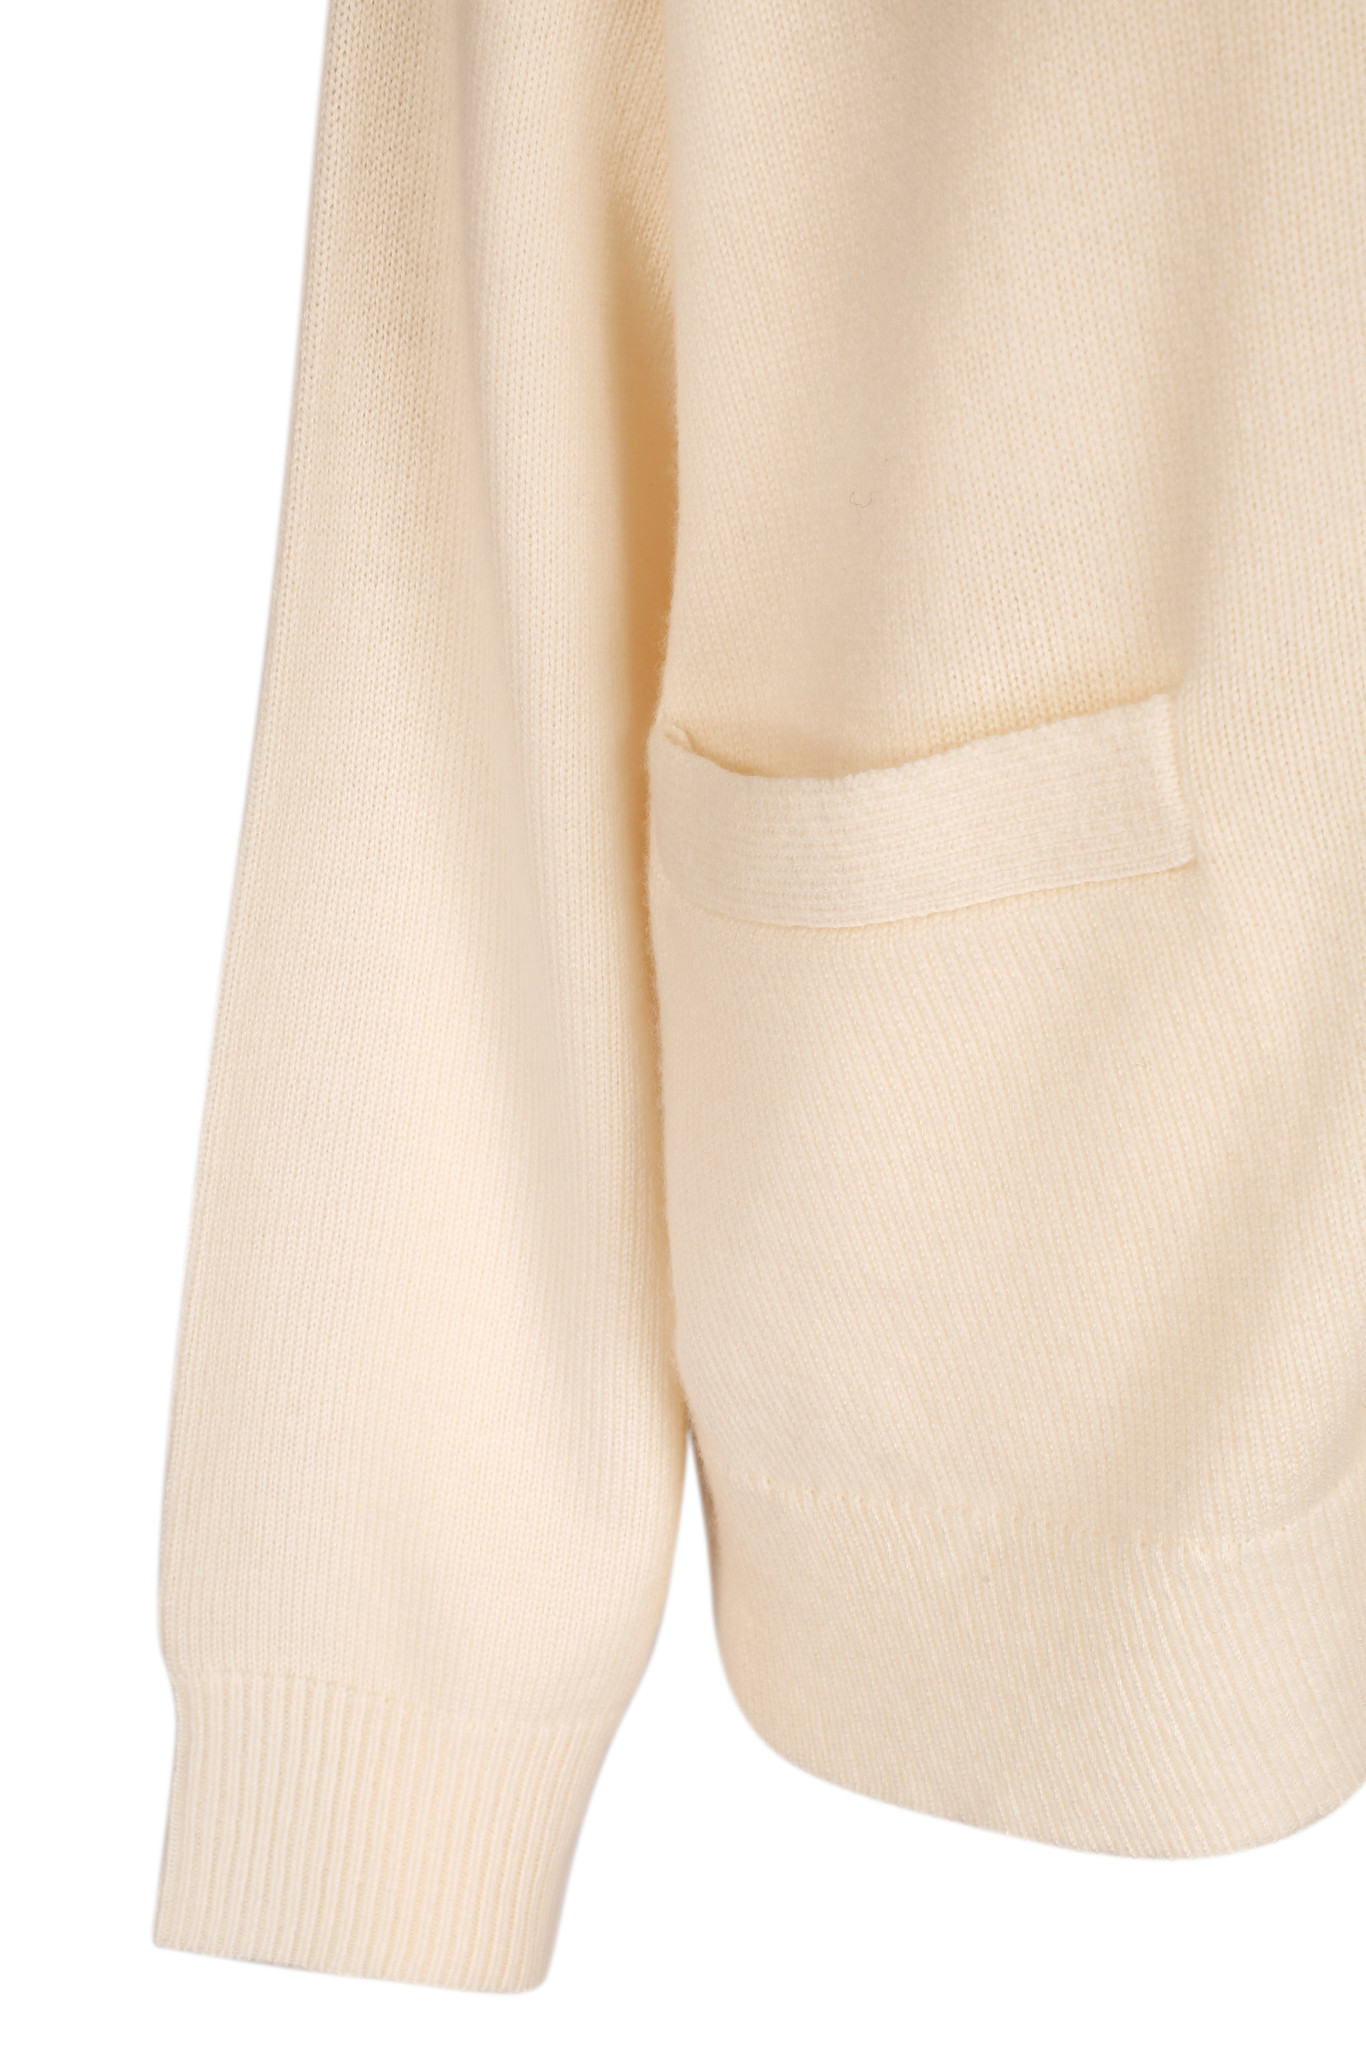 Moses Cardigan - Off White-3